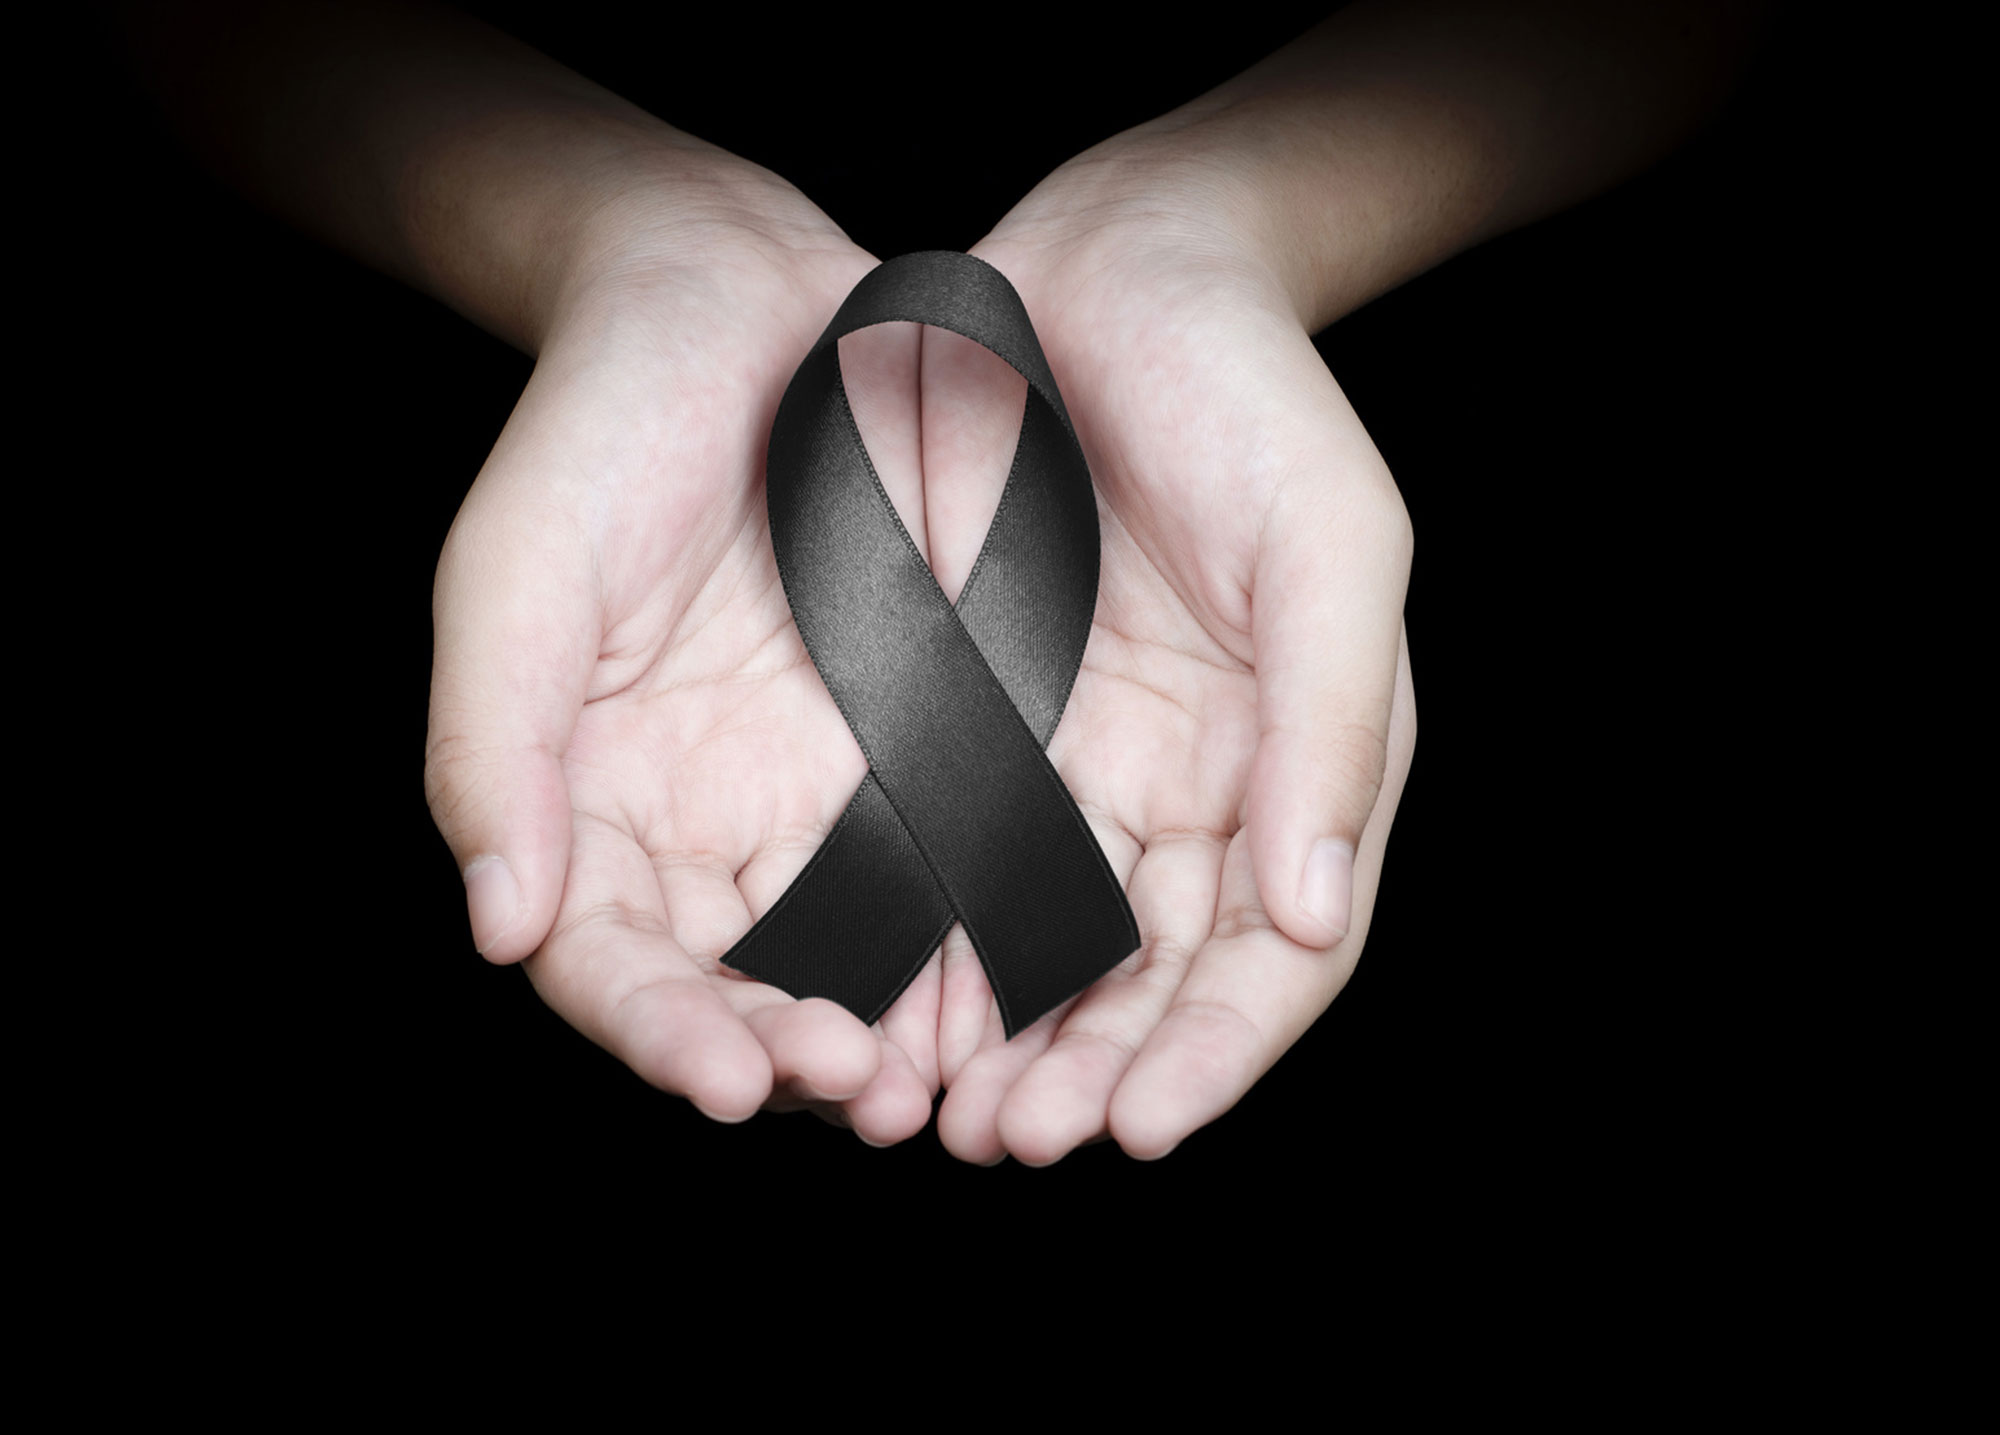 Quelle: #160526015 Hand holding black ribbon on black background mourning awareness sign © Love the wind | fotolia.com